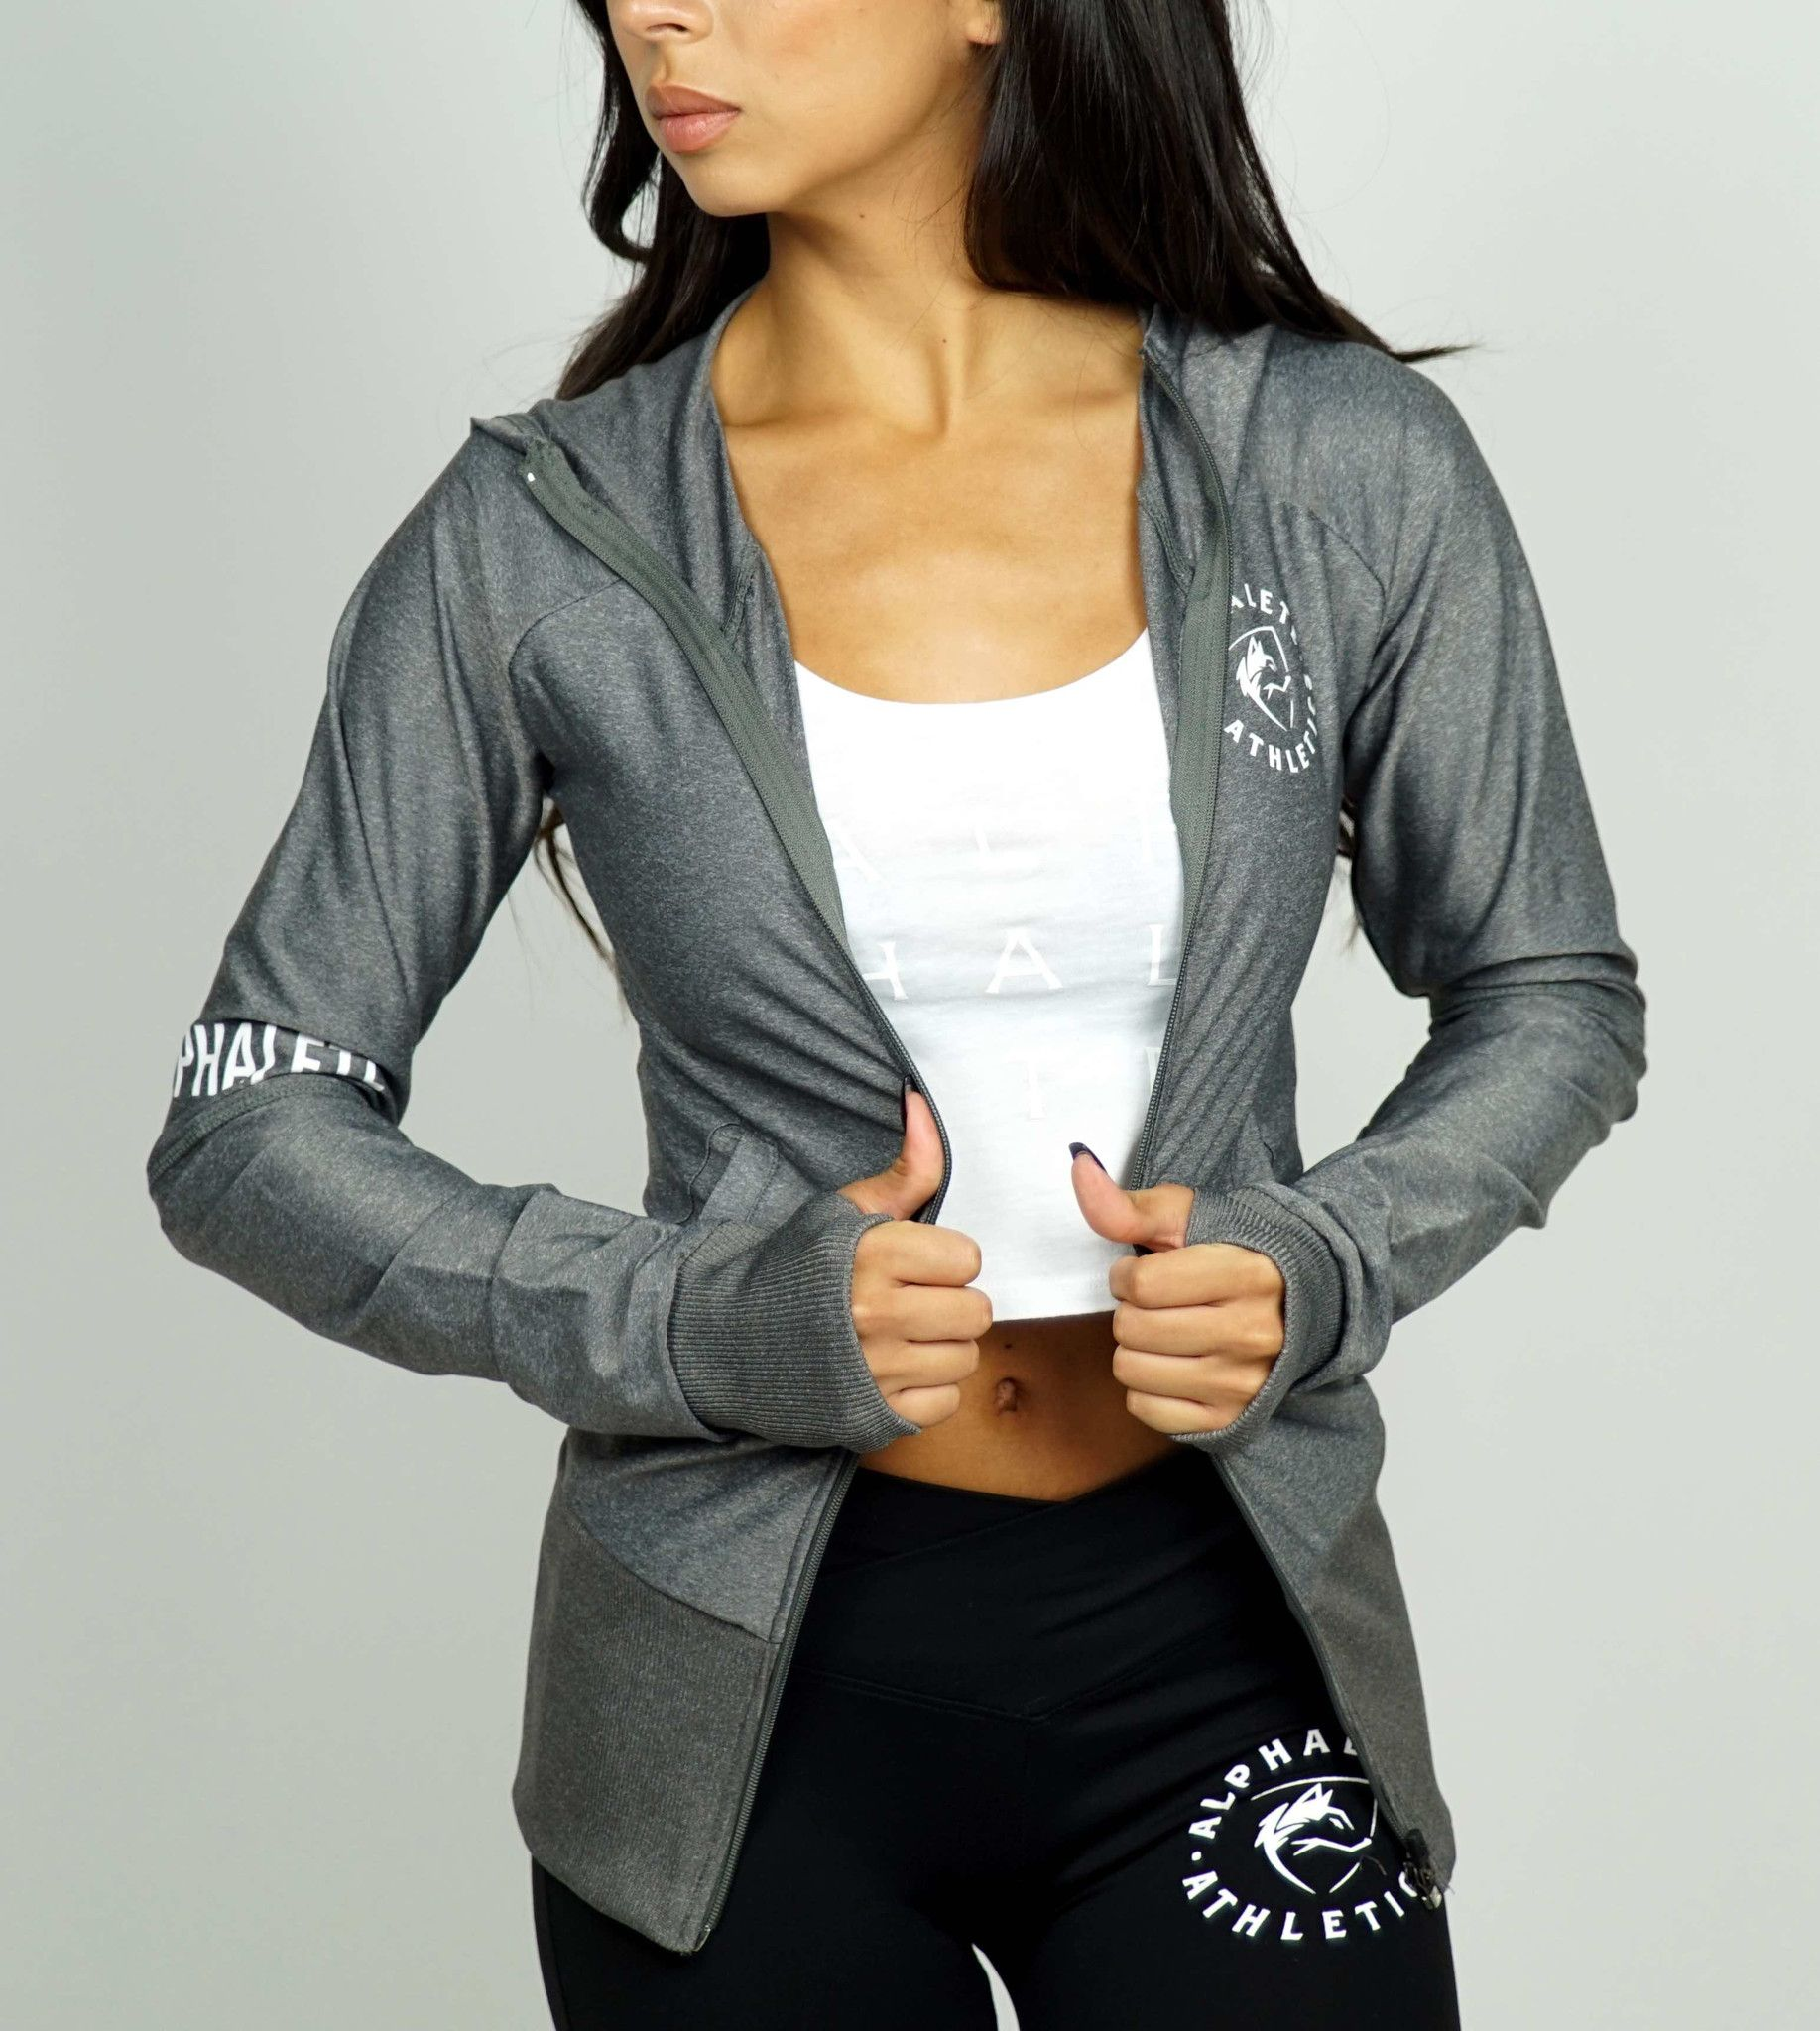 Jackets Alphalete Athletics Clothes, Clothes for women